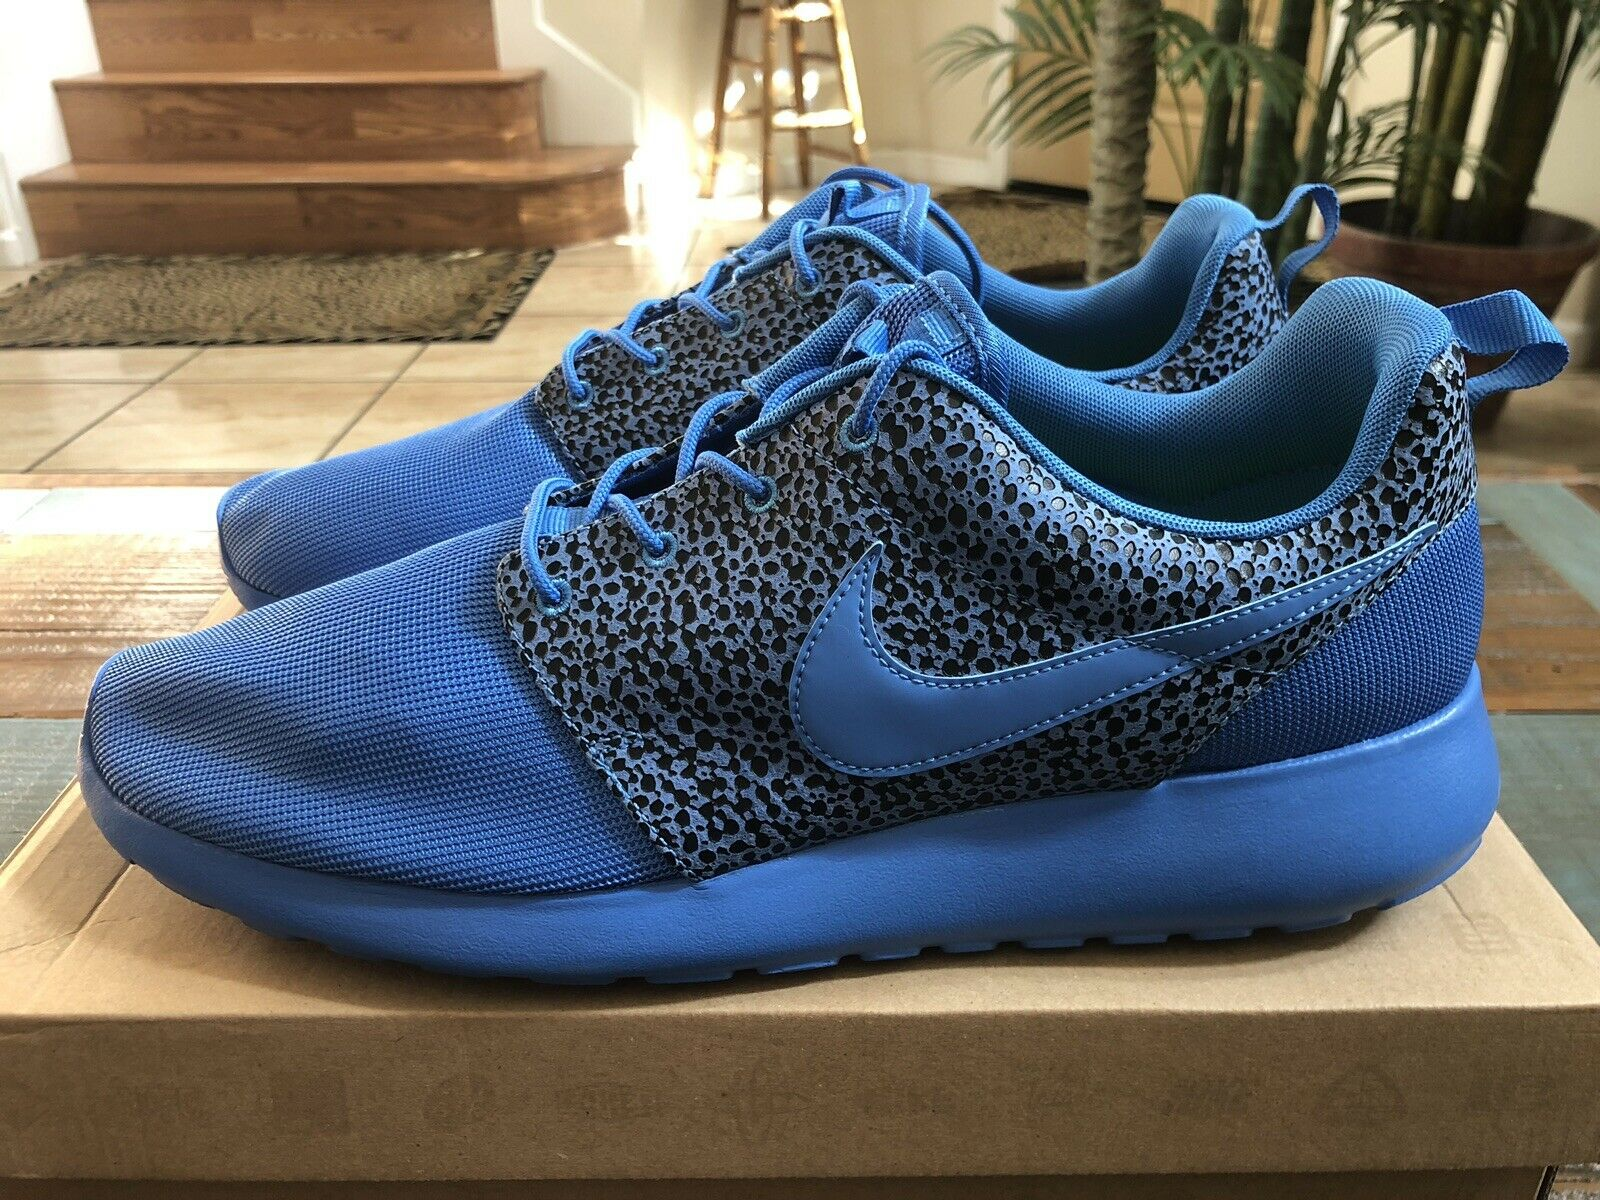 NIKE ROSHE RUN Safari Pack ROYAL Blitz bluee GPX RARE 525234 400 Size 13